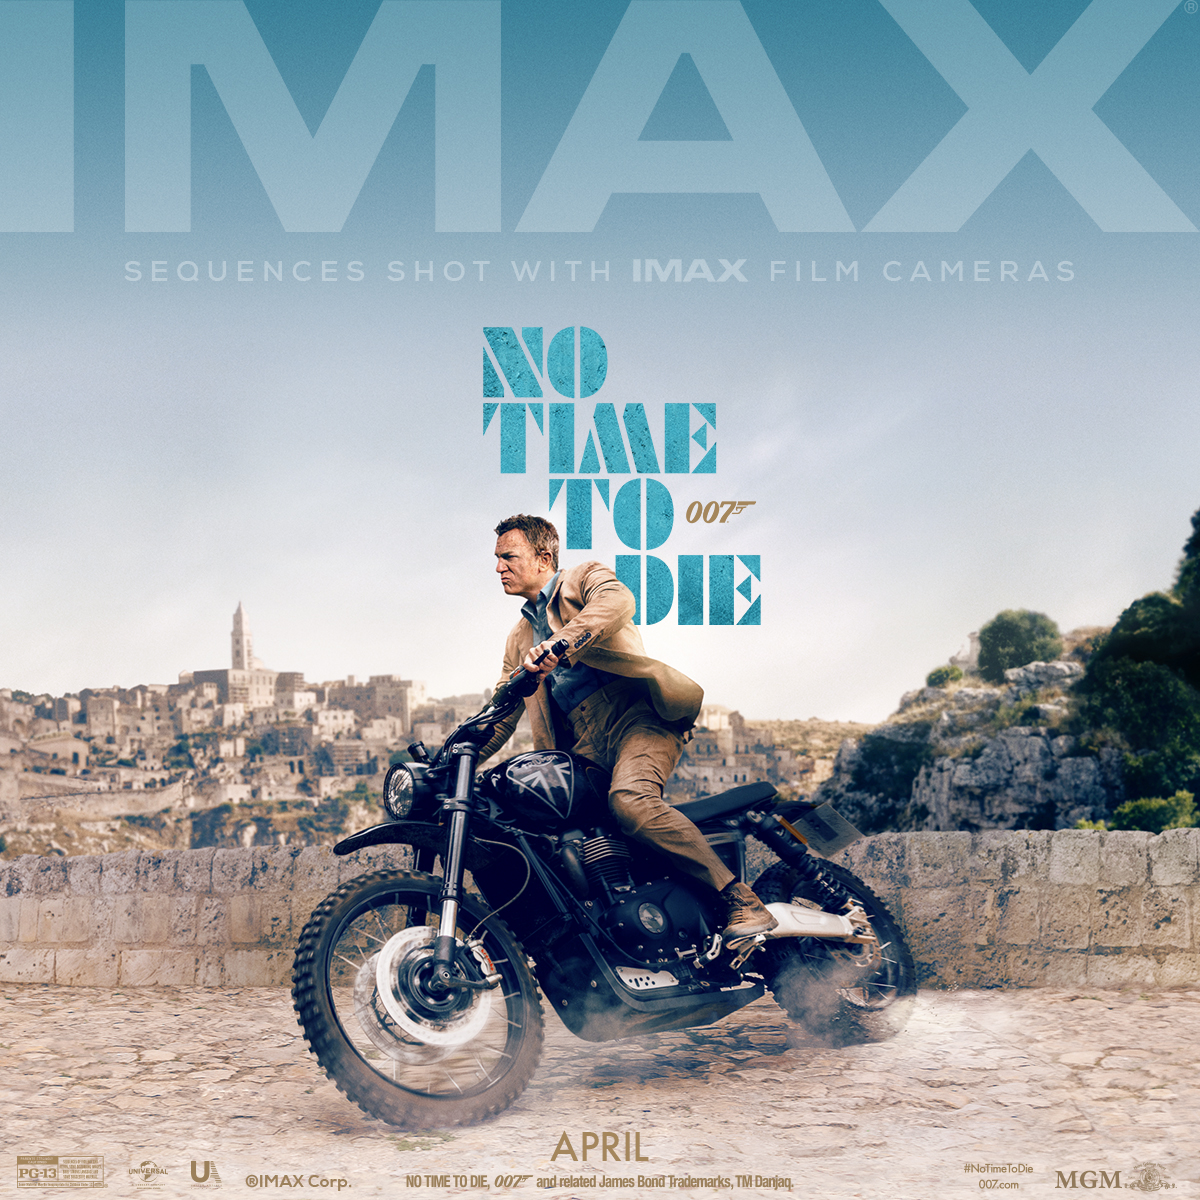 """The world premiere of the new @007 """"No Time to Die"""" is on April 7th! The online ticket sales for the public screening are open now :  https://t.co/TEKL2DCLHK Proceedings will go to charity.  @Grimaldi_Forum @VisitMonaco"""